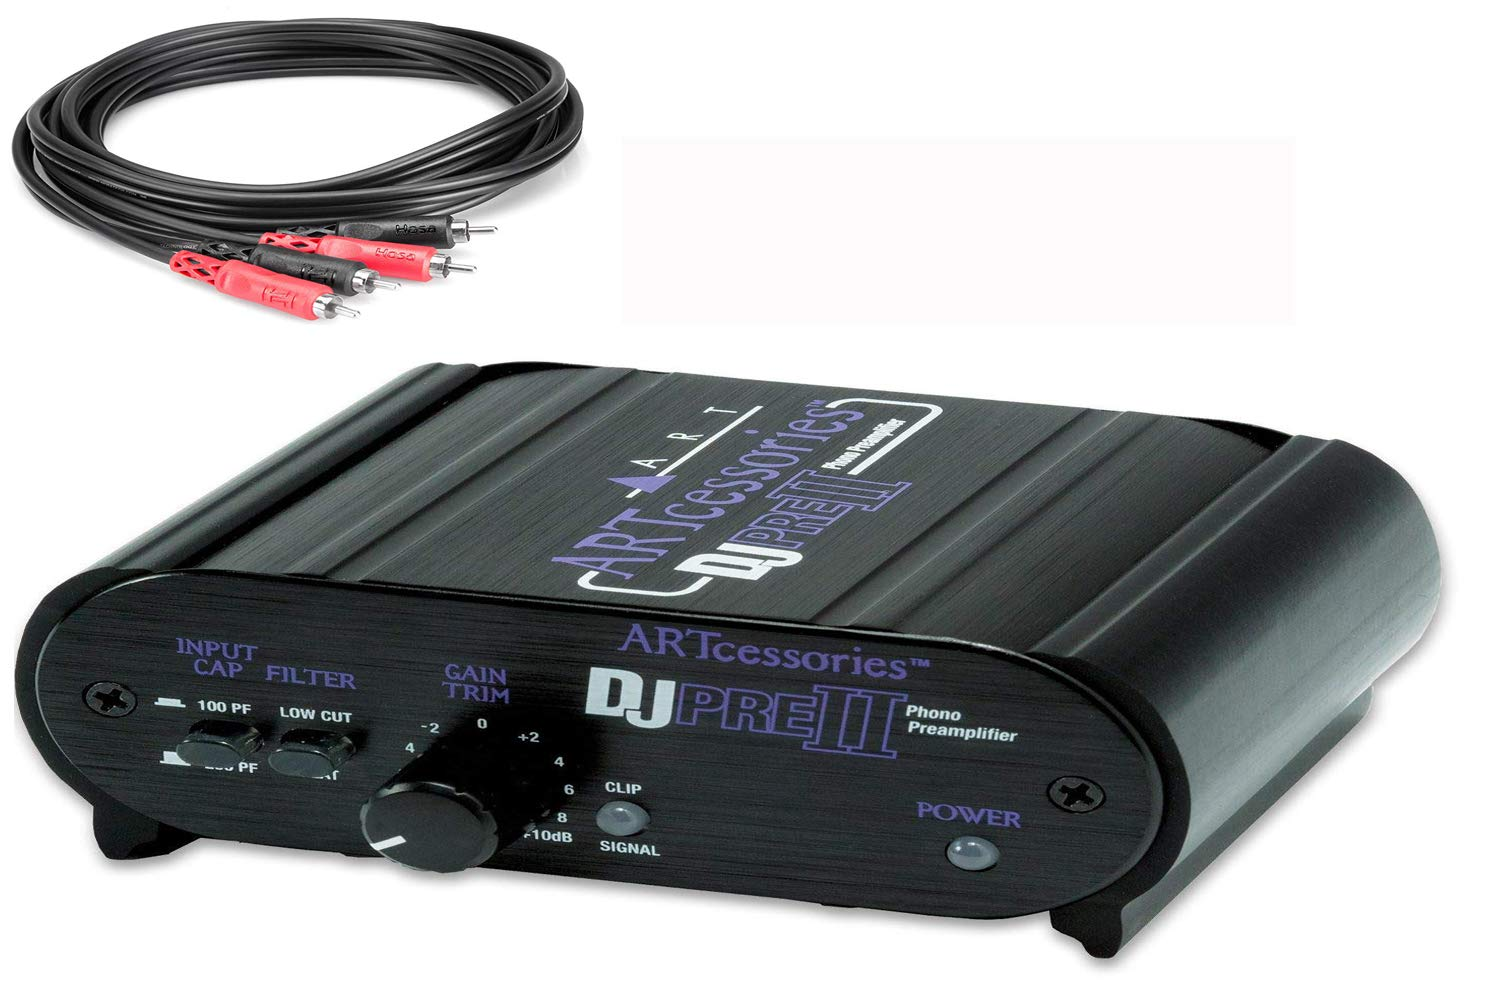 Art DJ Pre II Turntable Phono Preamplifier with Free Hosa RCA Male to RCA Male 3 Foot Cables by ART